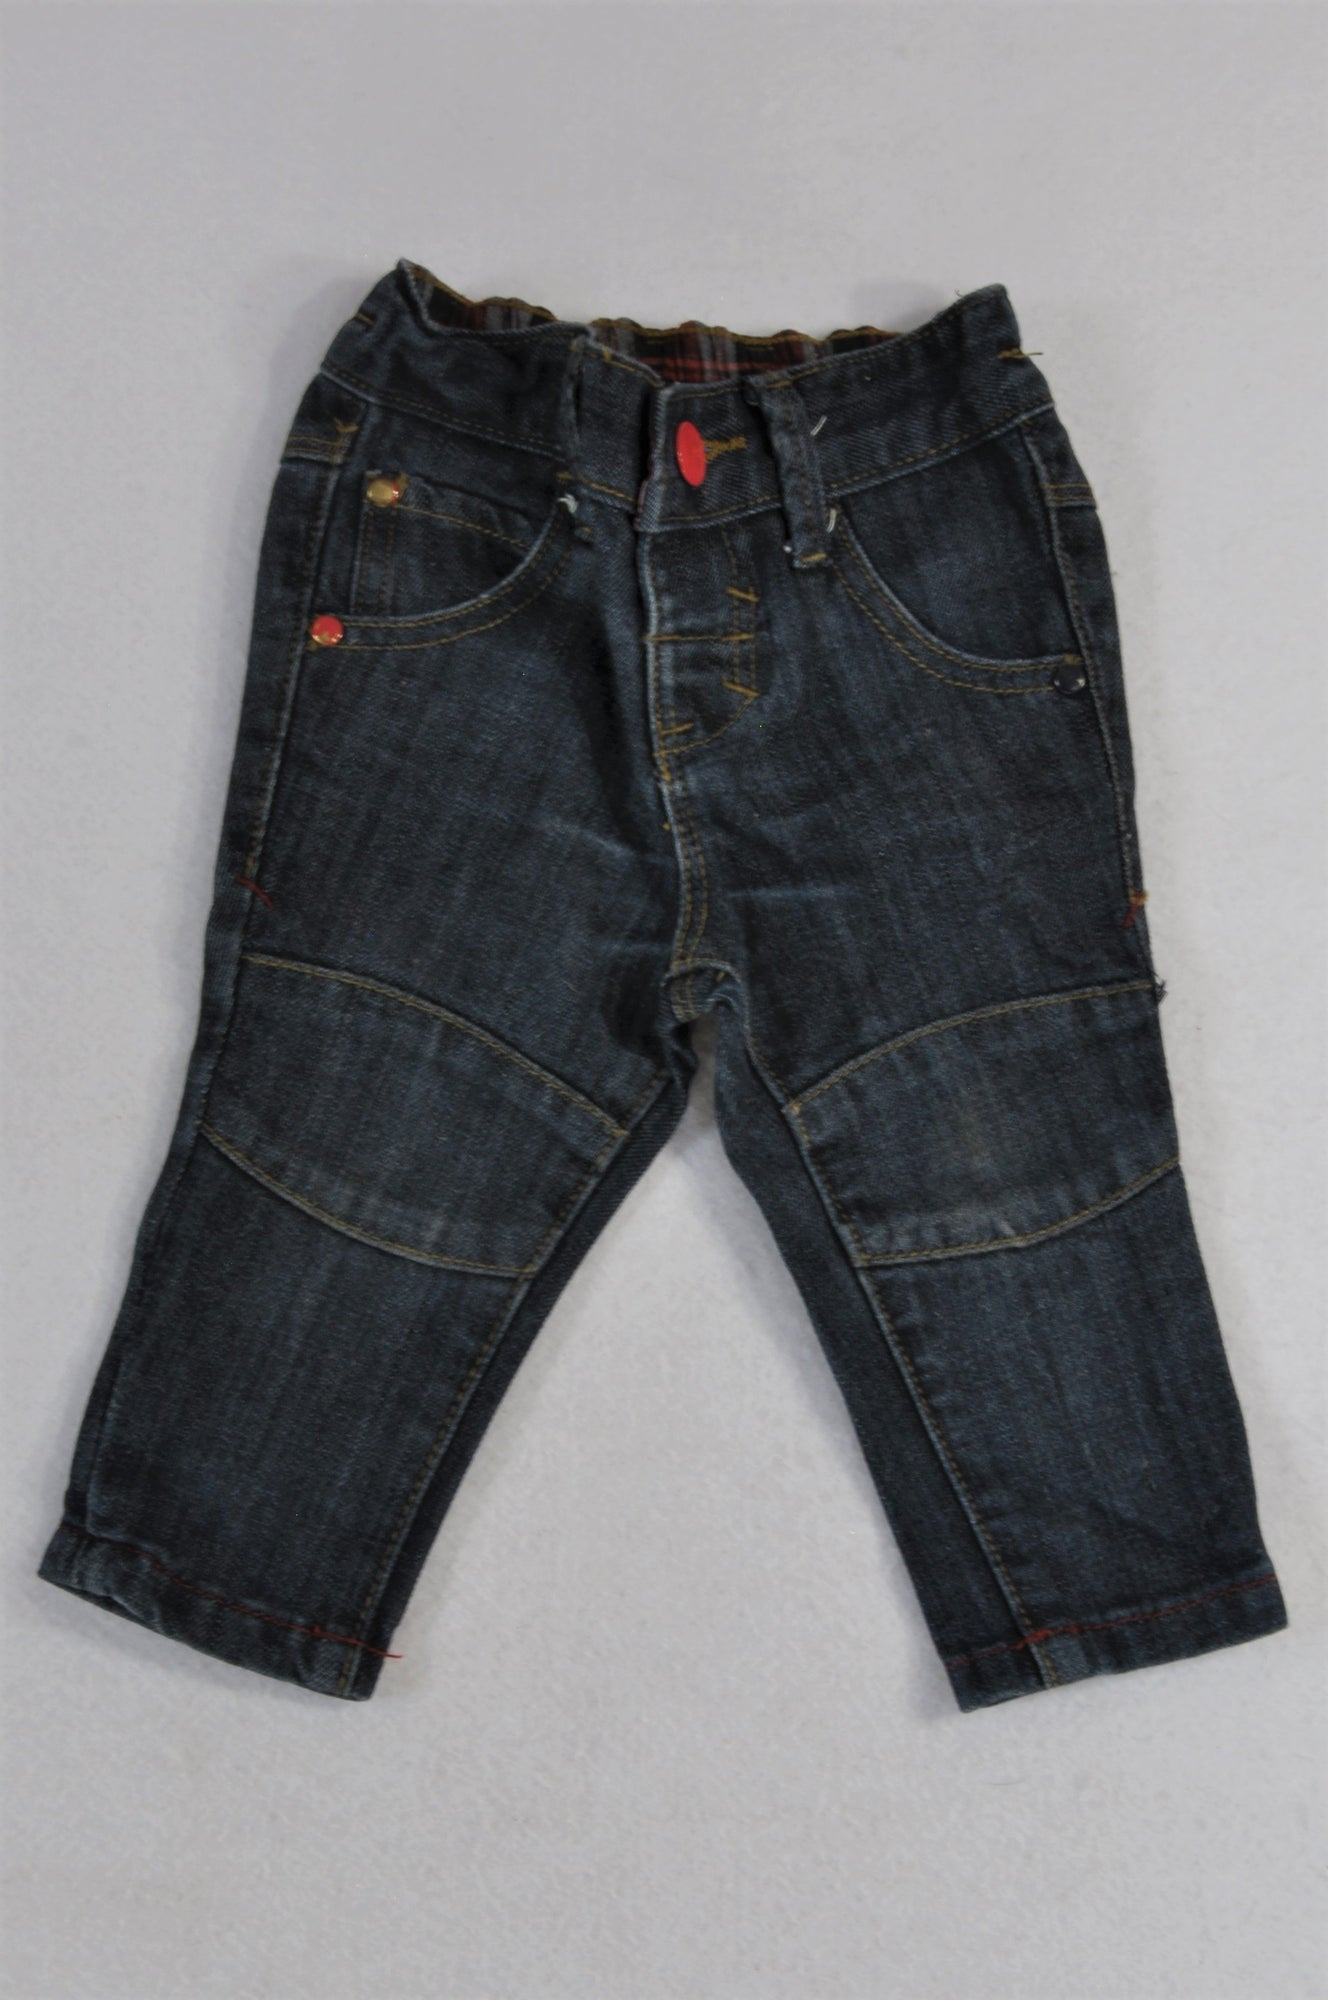 Edgars Dark Wash Knee Detail Denim Jeans Boys 0-3 months